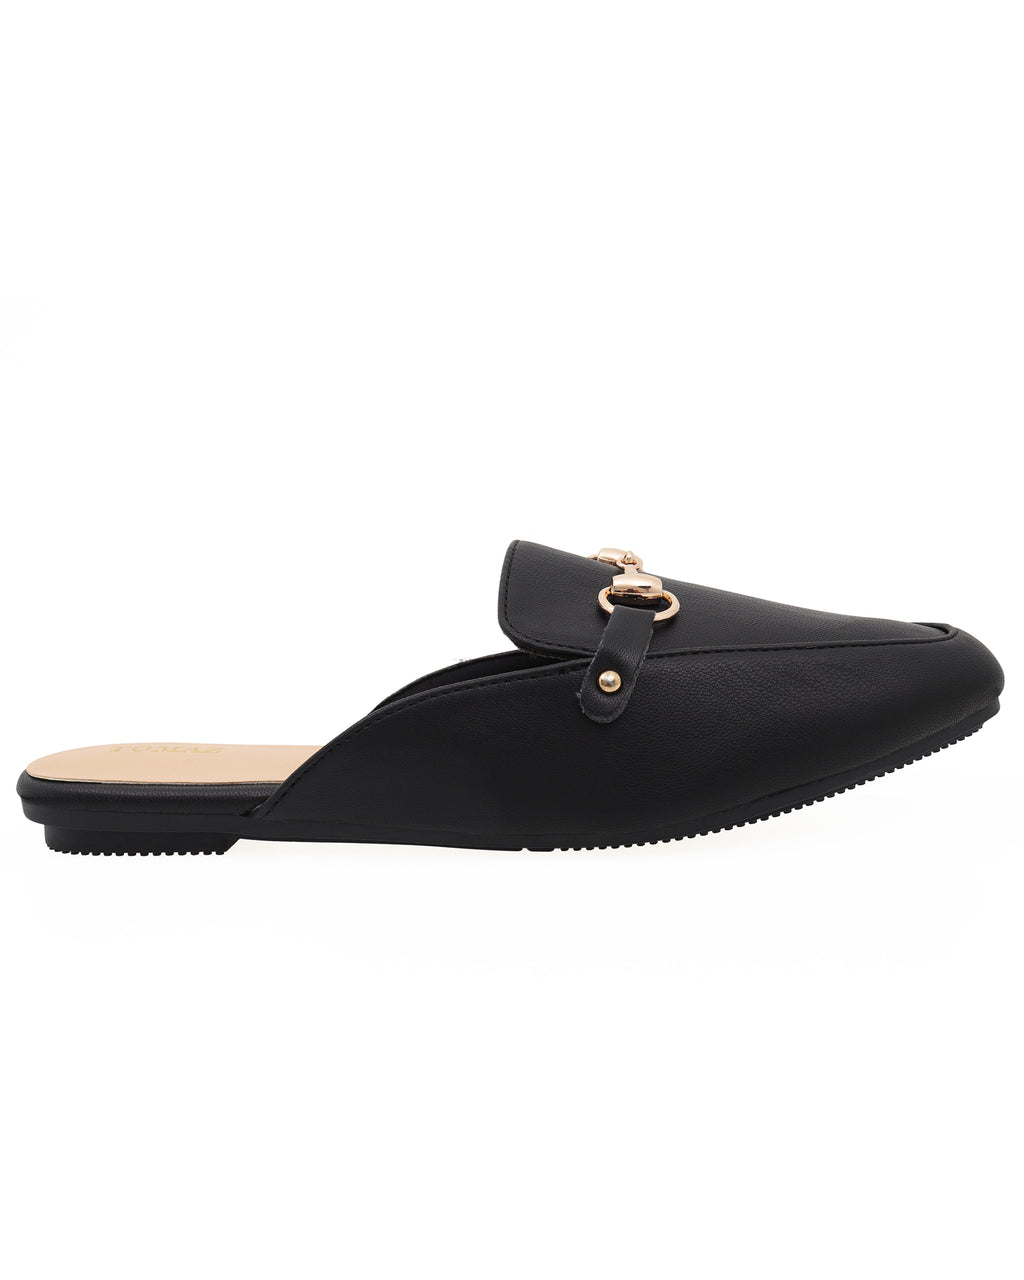 Tomaz XP91 Ladies Mule (Black)